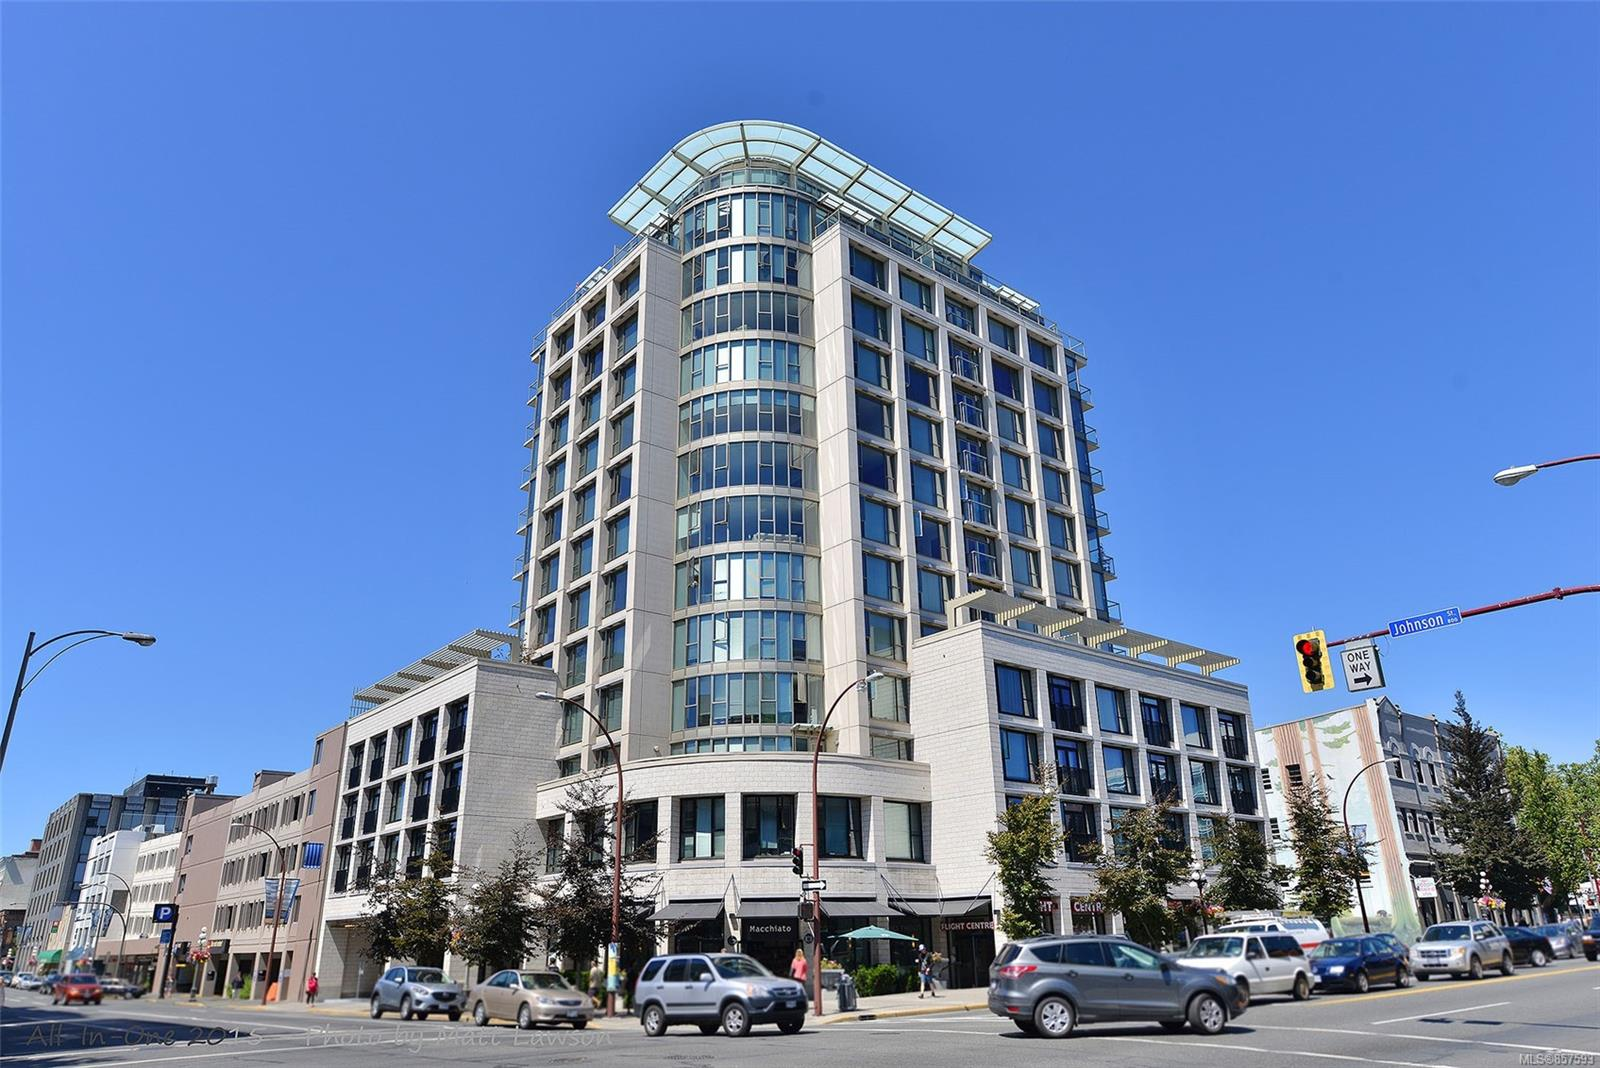 1 Bedroom, 1 Bathroom, Condo/Townhouse in Victoria